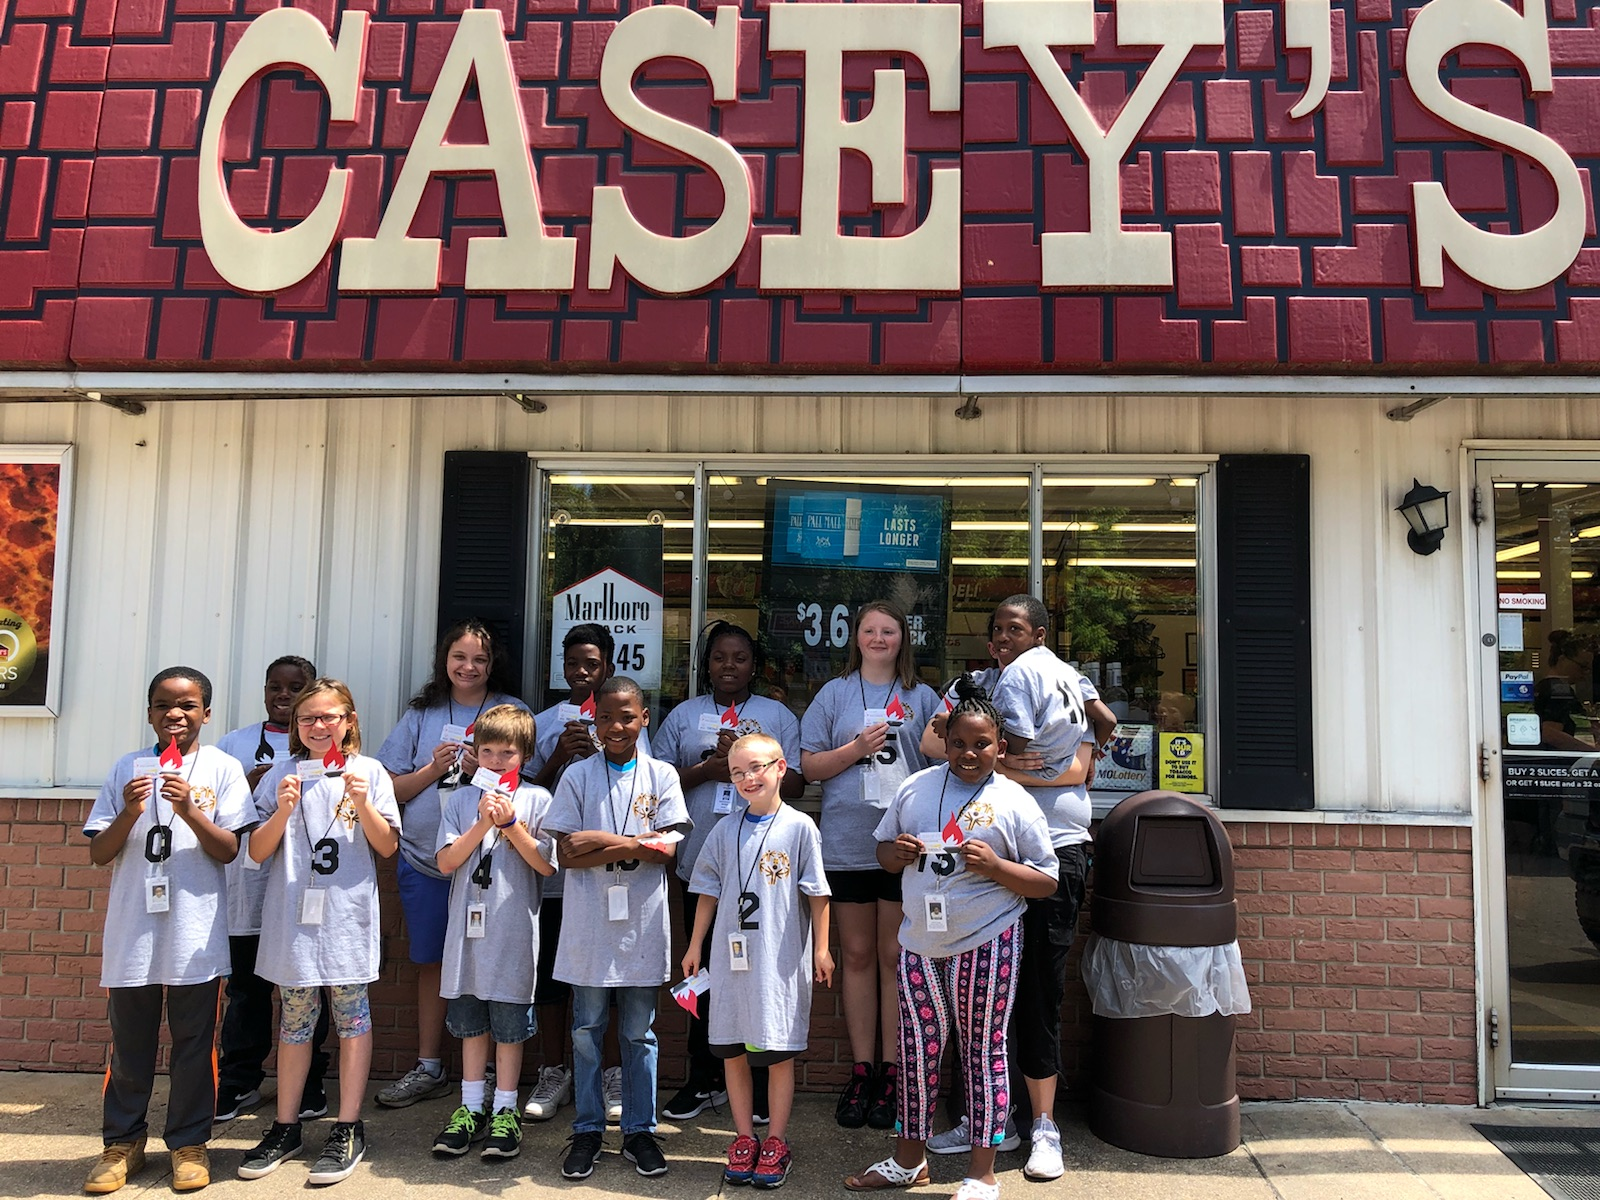 Casey's General Stores continued its partnership in June by teaming up with Coca-Cola to do in-store promotions and selling pin-up icons. We are looking forward to another successful year with Casey's and Coca-Cola in 2019!